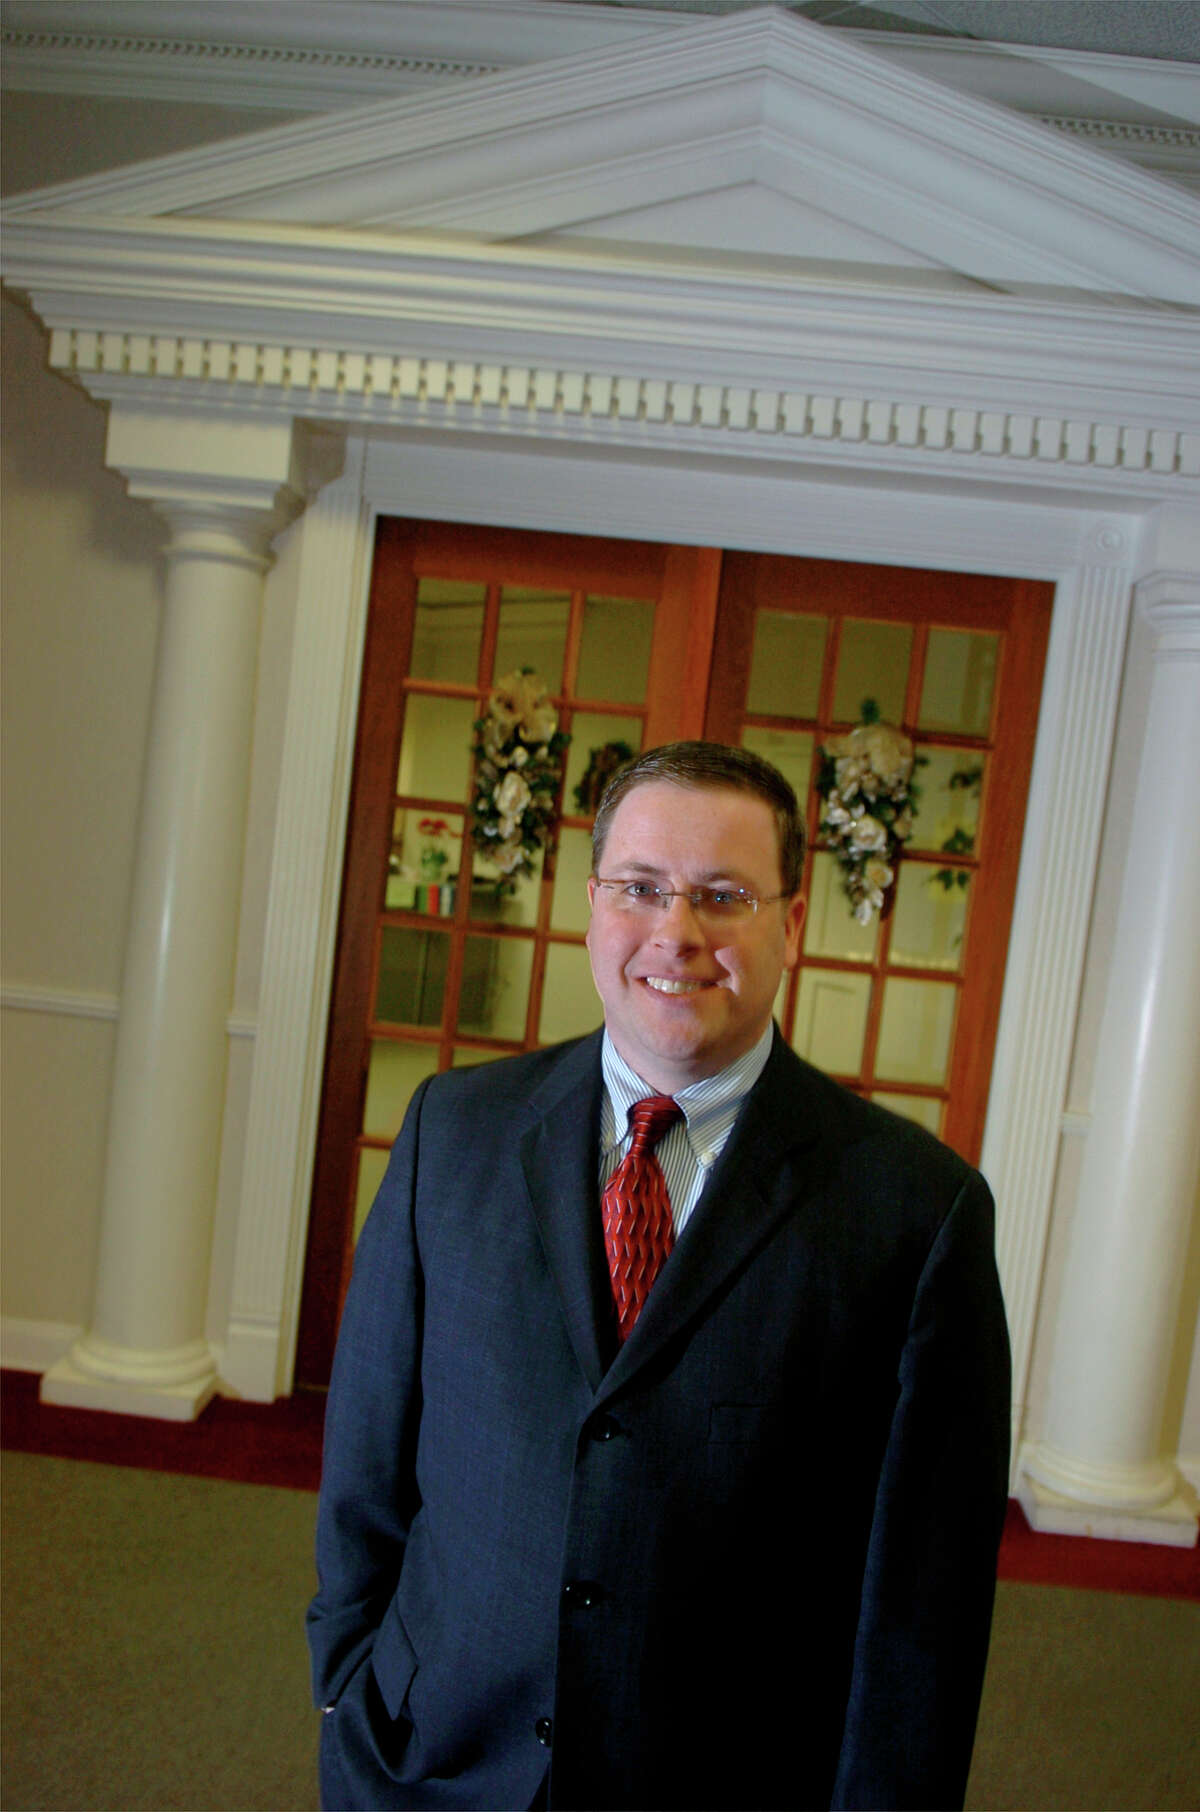 Thomas McCarthy City Council President is is deputy director of labor relations for the city of Bridgeport. State Rep. John F. Hennessy, D-Bridgeport wants to change a state law that has allowed Bridgeport's elected officials to ignore a charter provision preventing them from being employed by the city, and governing it as councilmen.